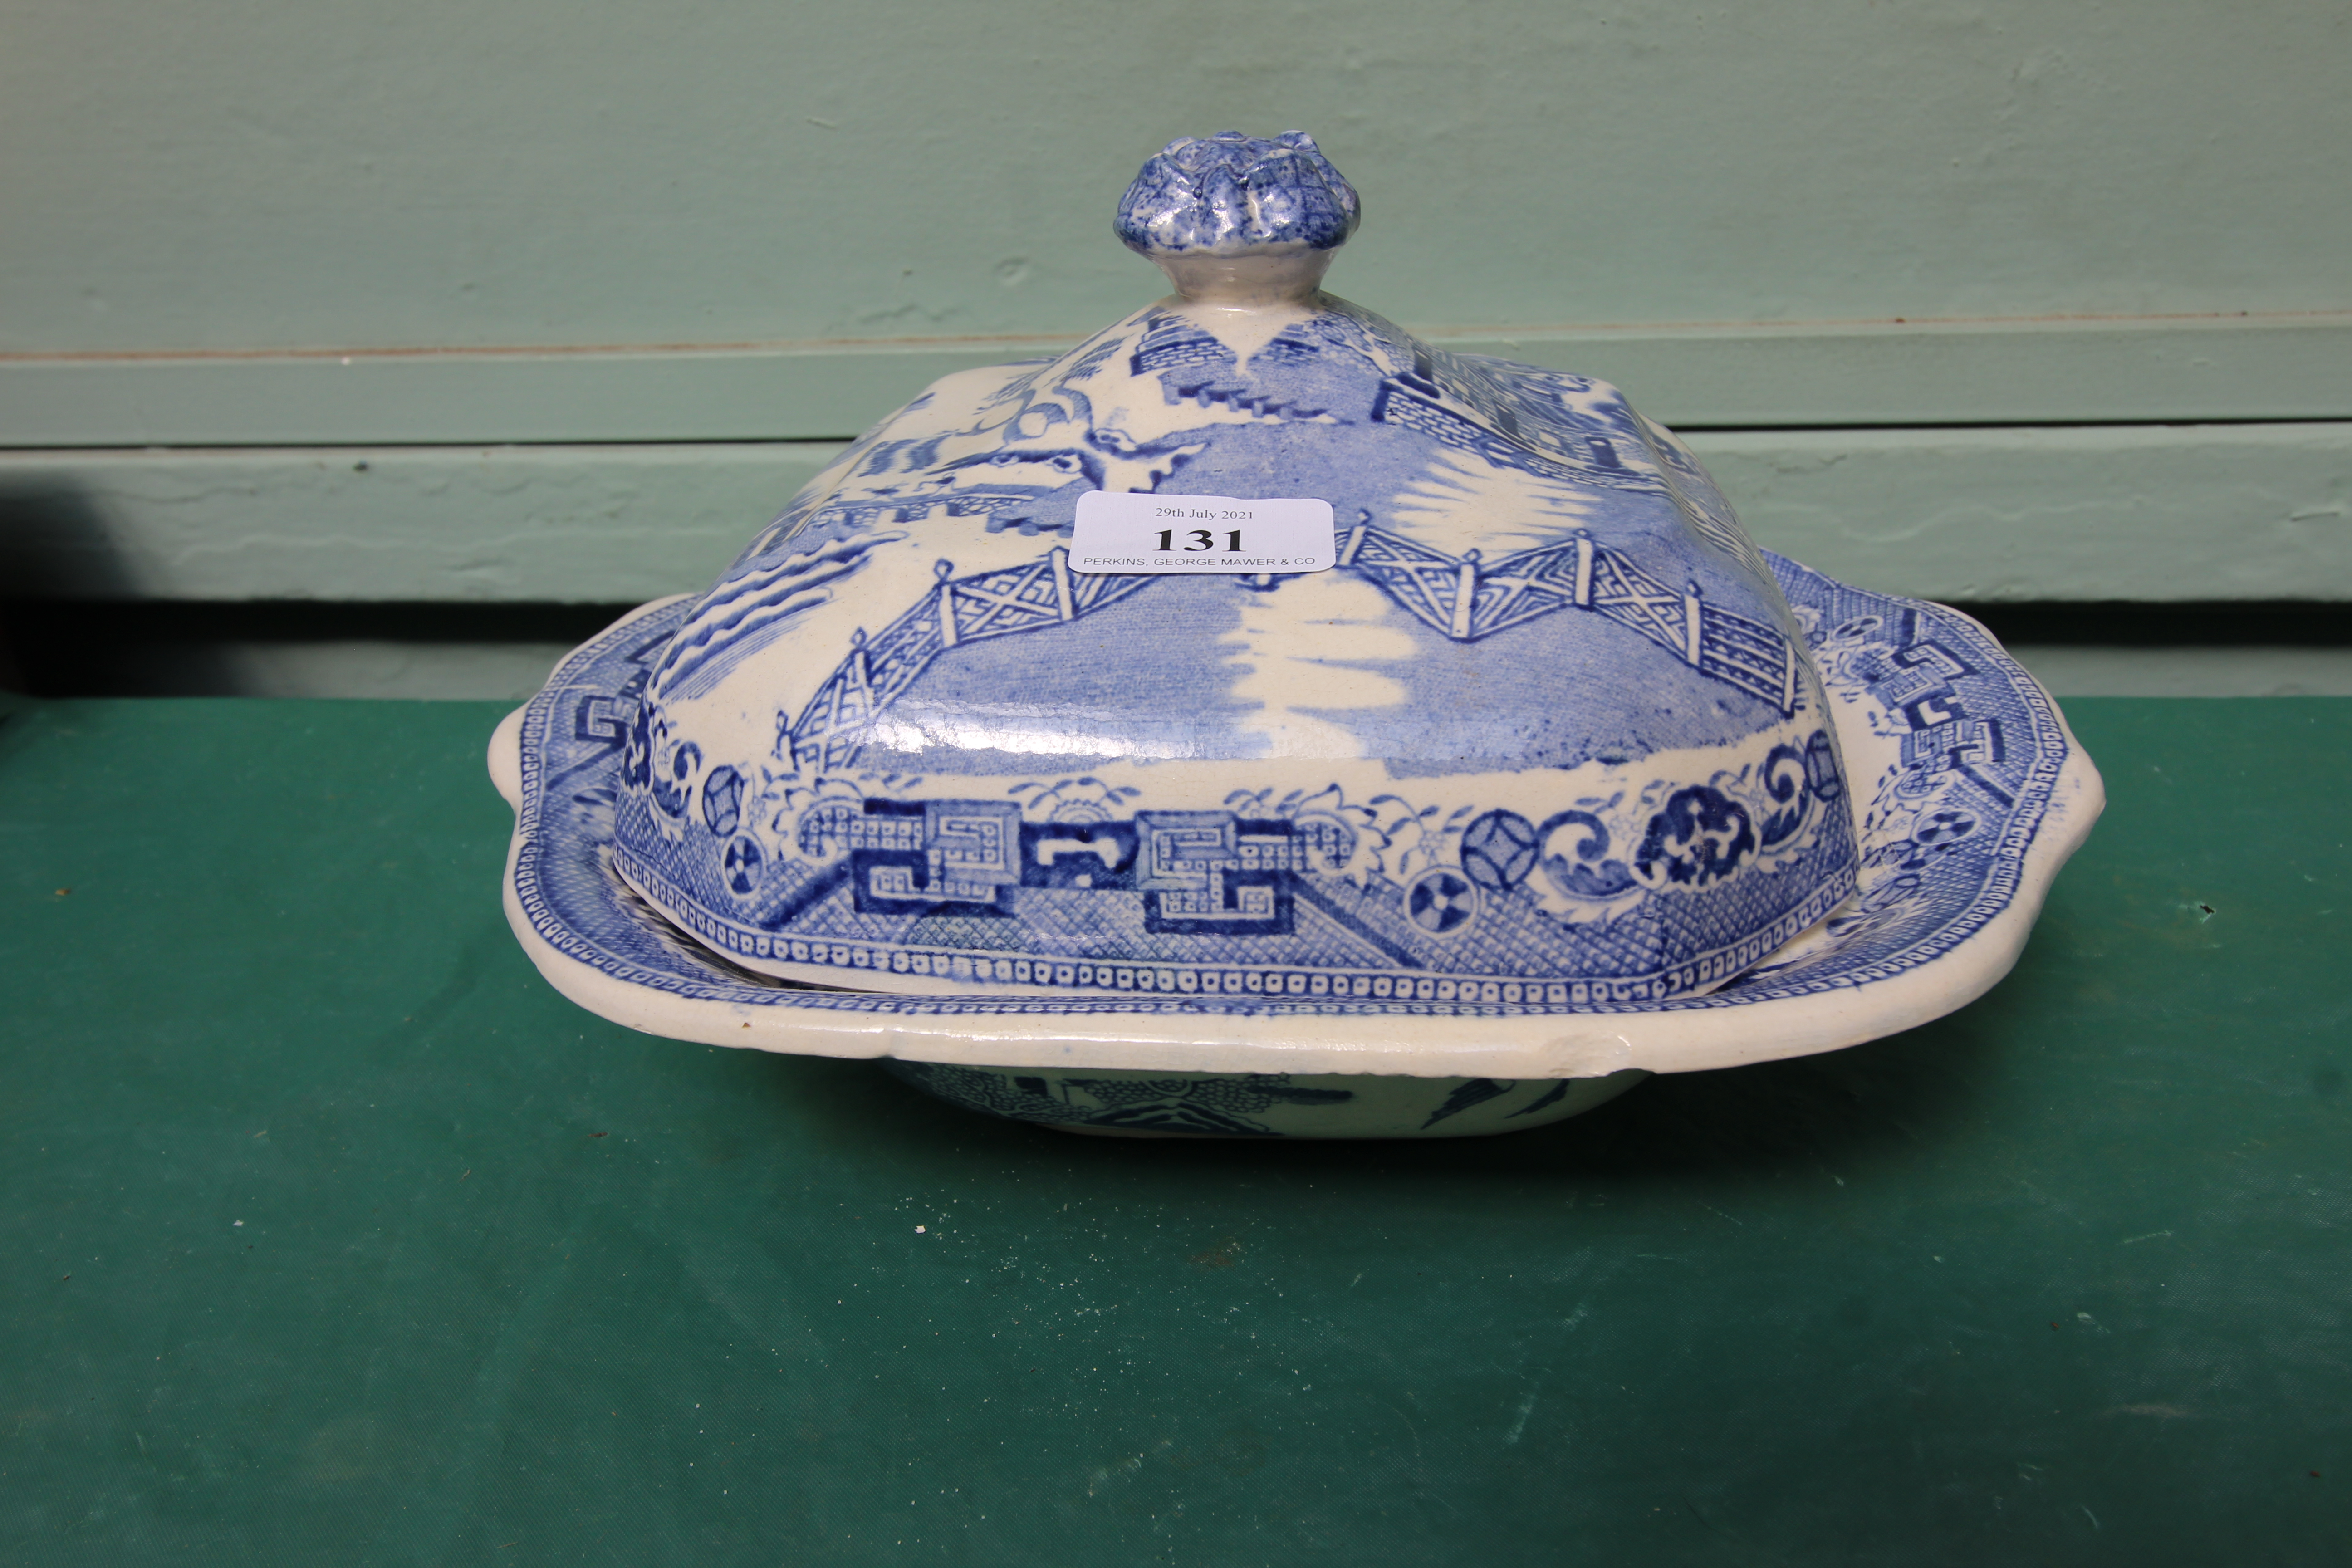 Larger willow patterned vegetable dish in similar style